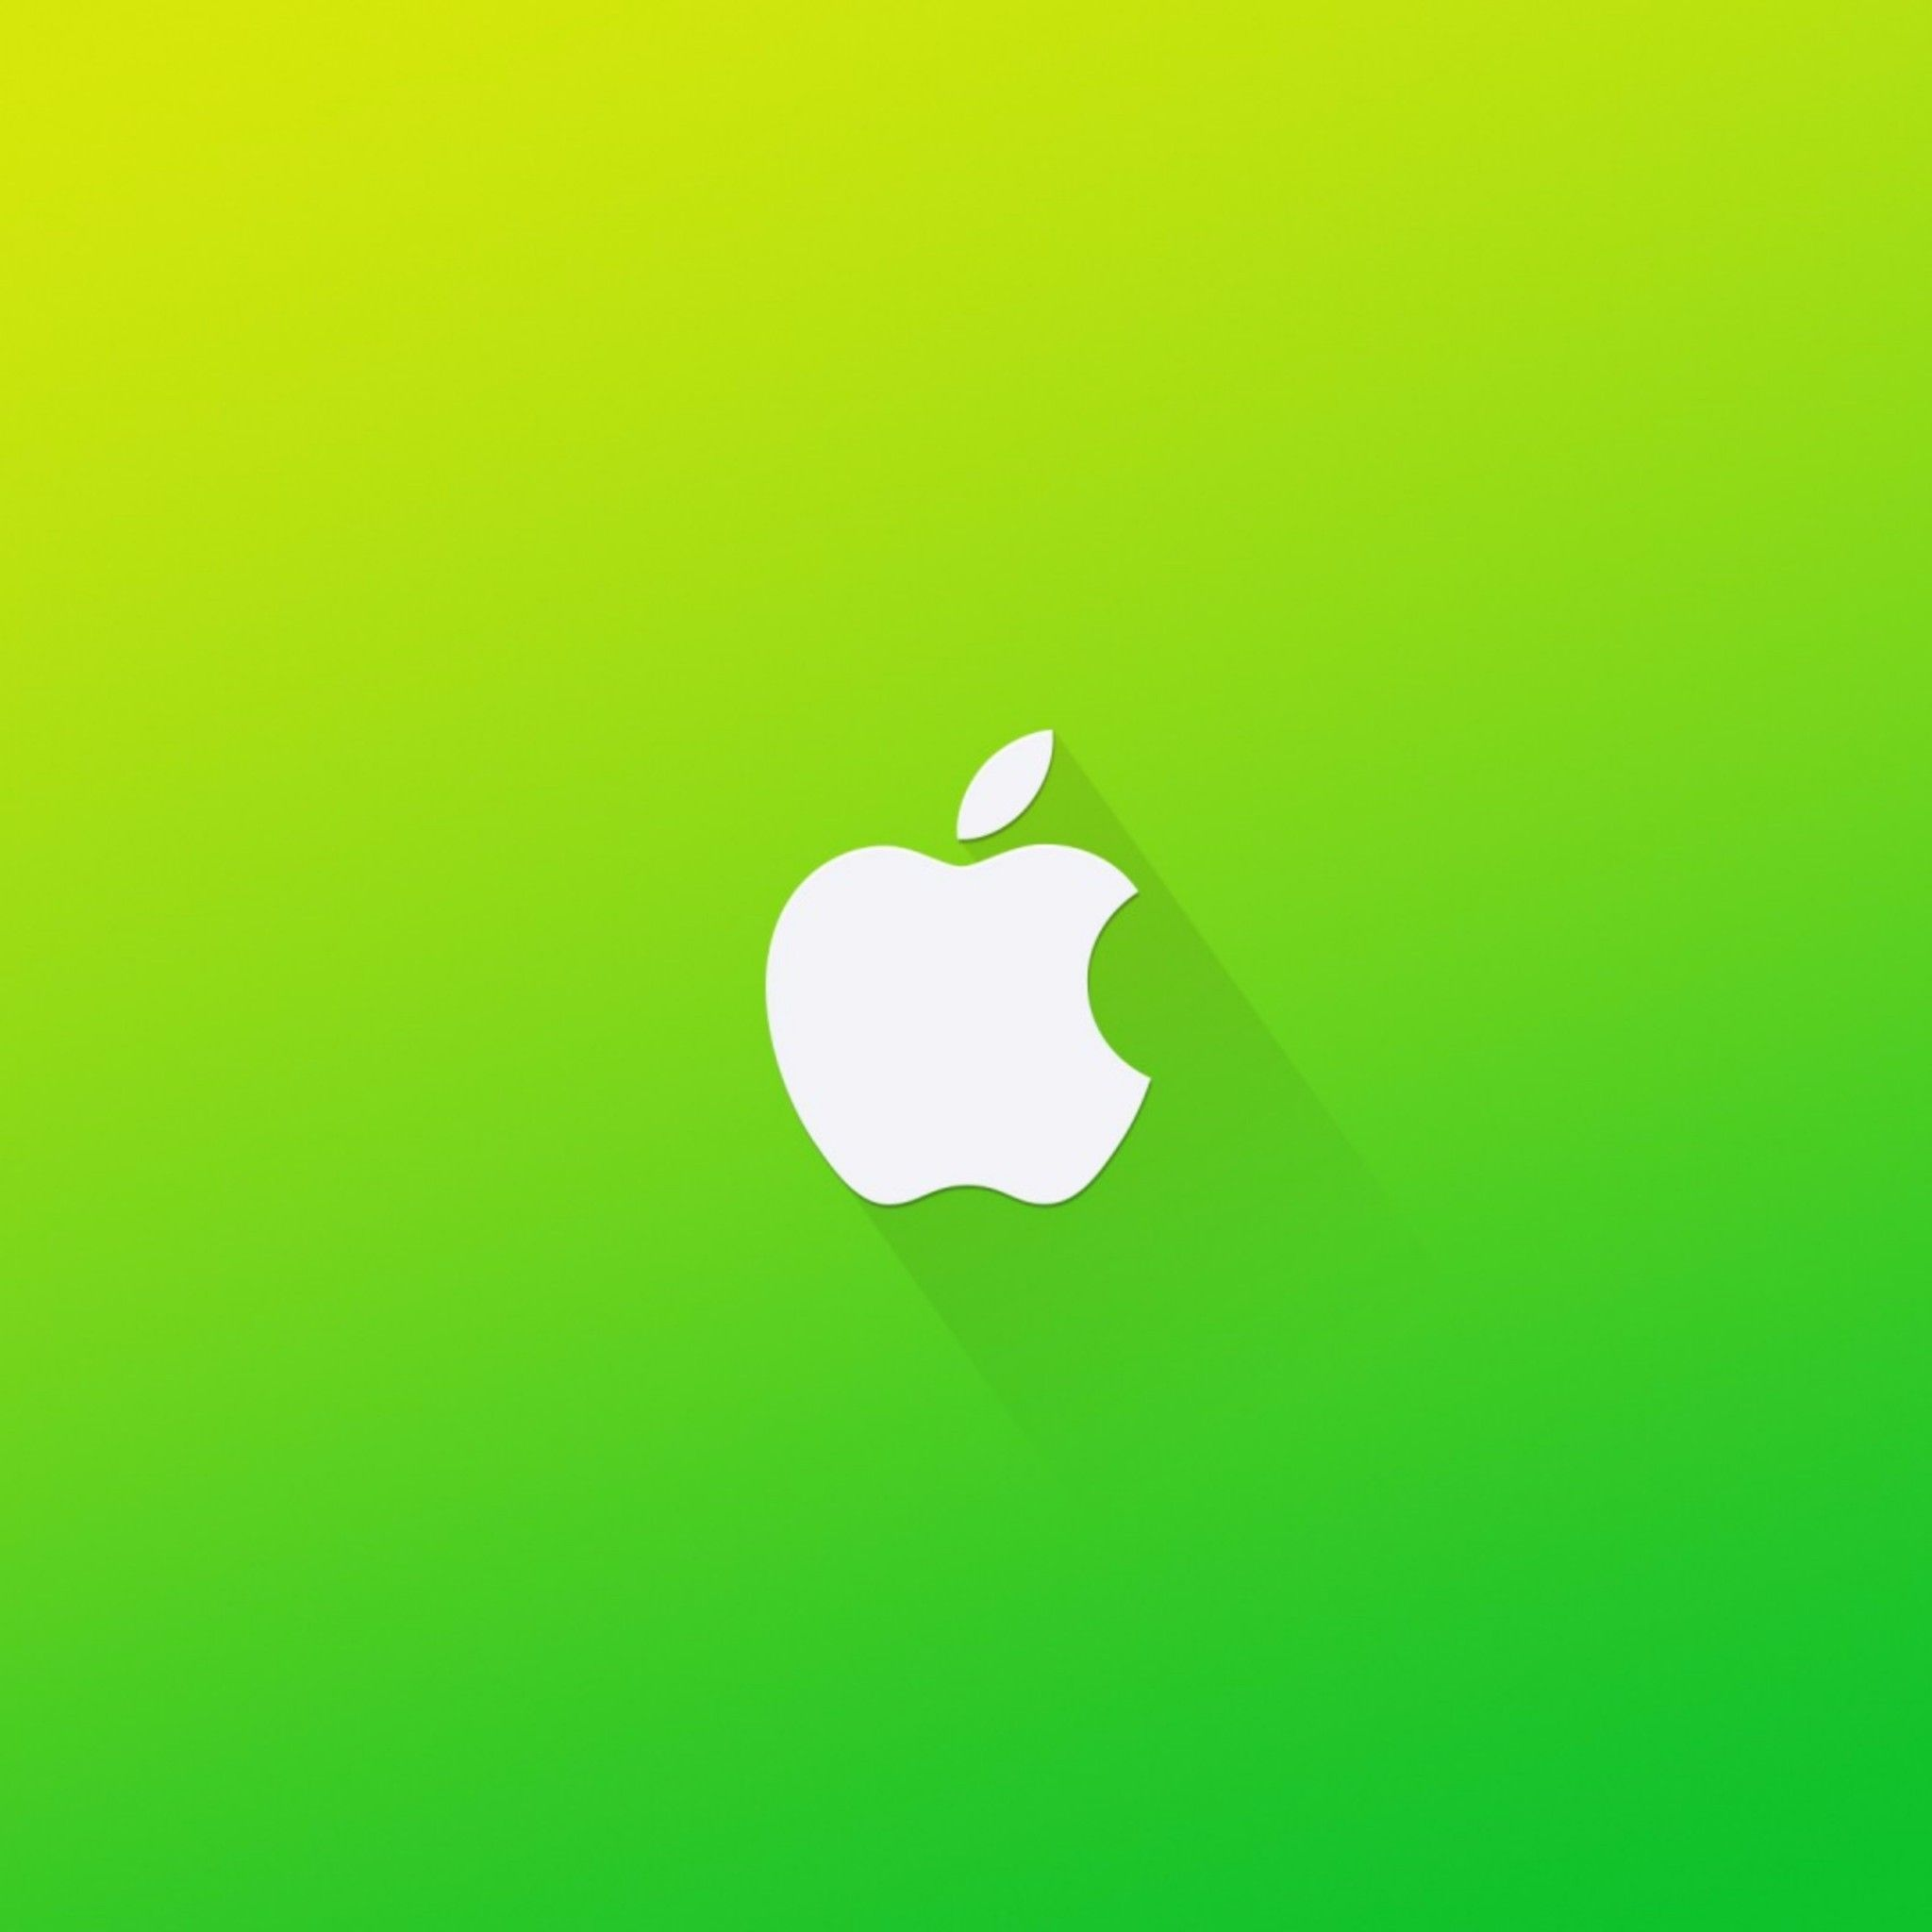 green apple logo | ipad pro & others wallpaper! | pinterest | apple